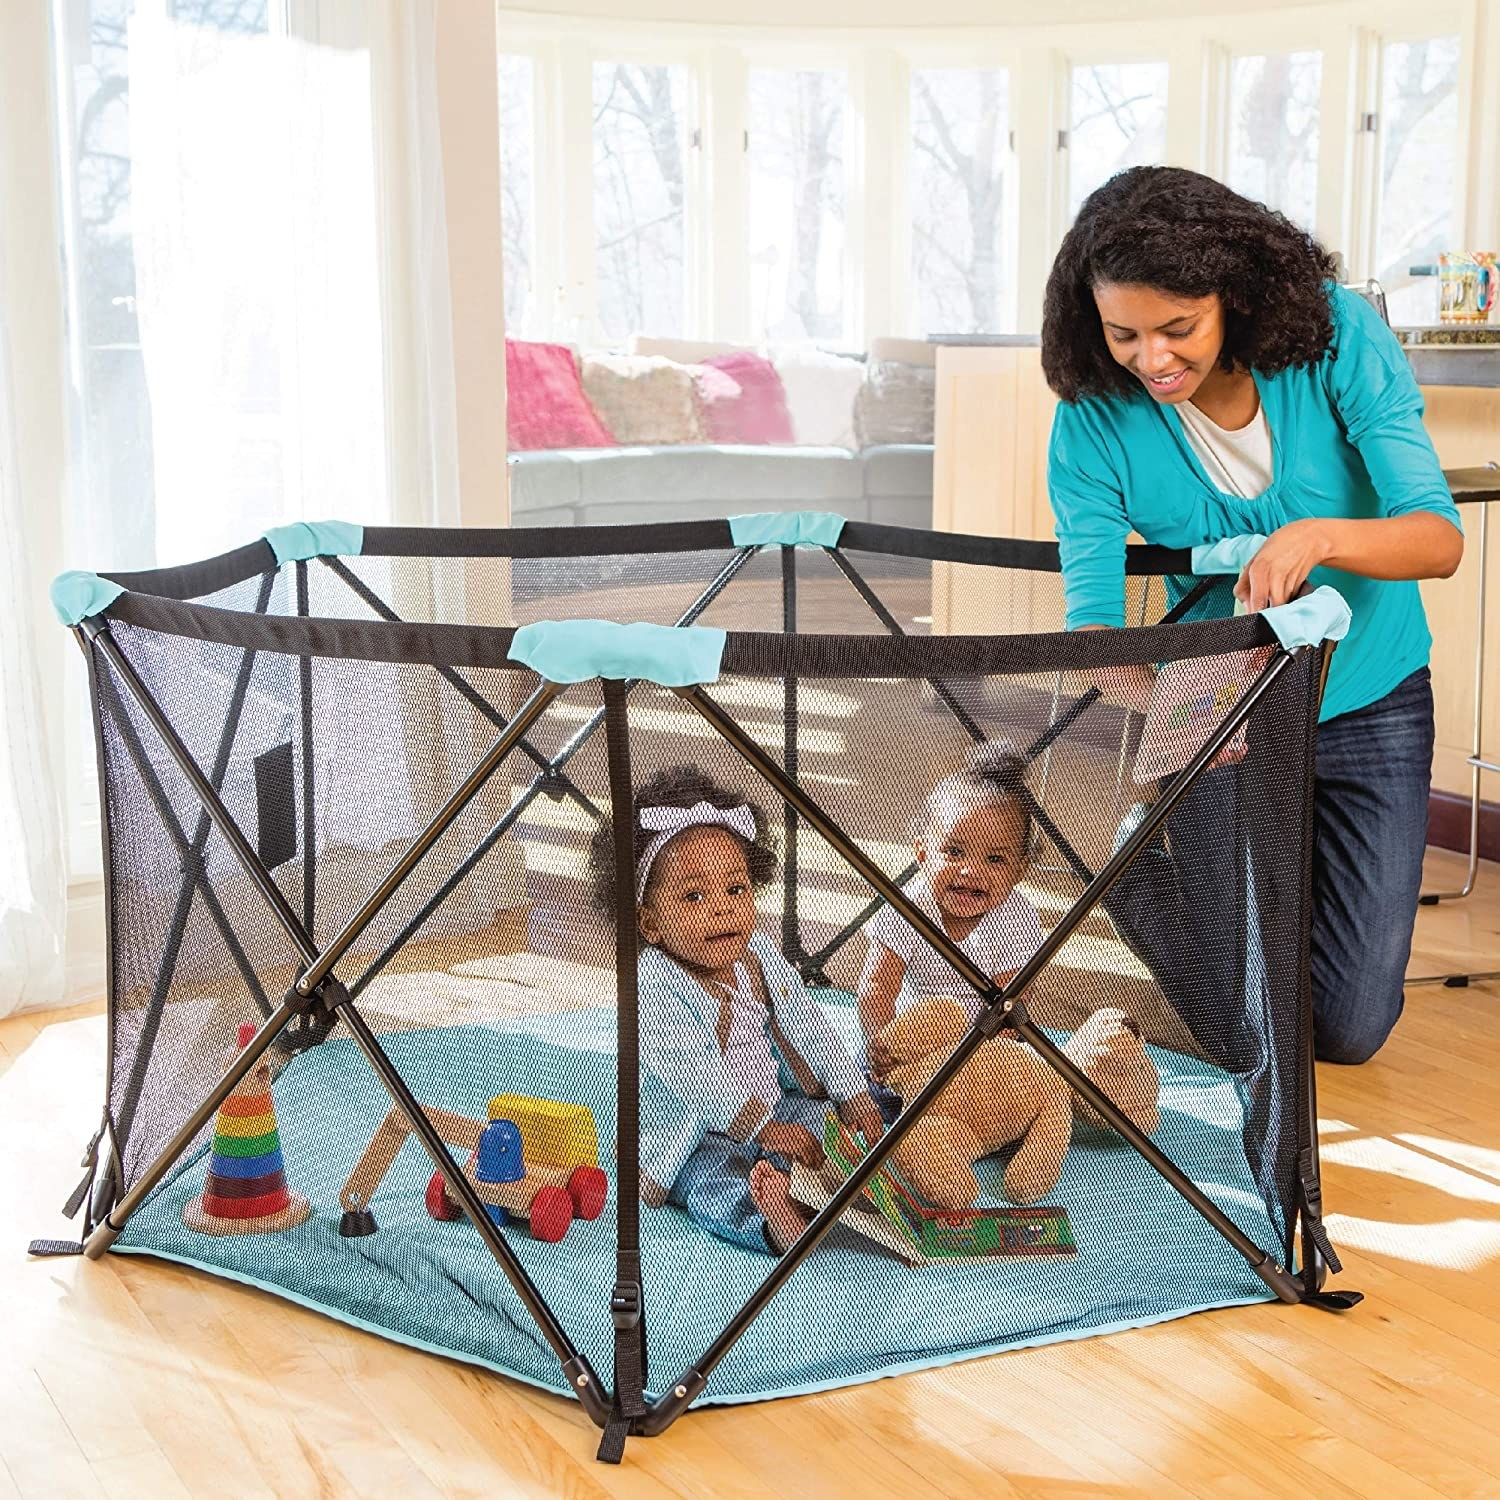 Two young children inside the play space while indoors. There is plenty of room for them both to move around, even with several toys inside.